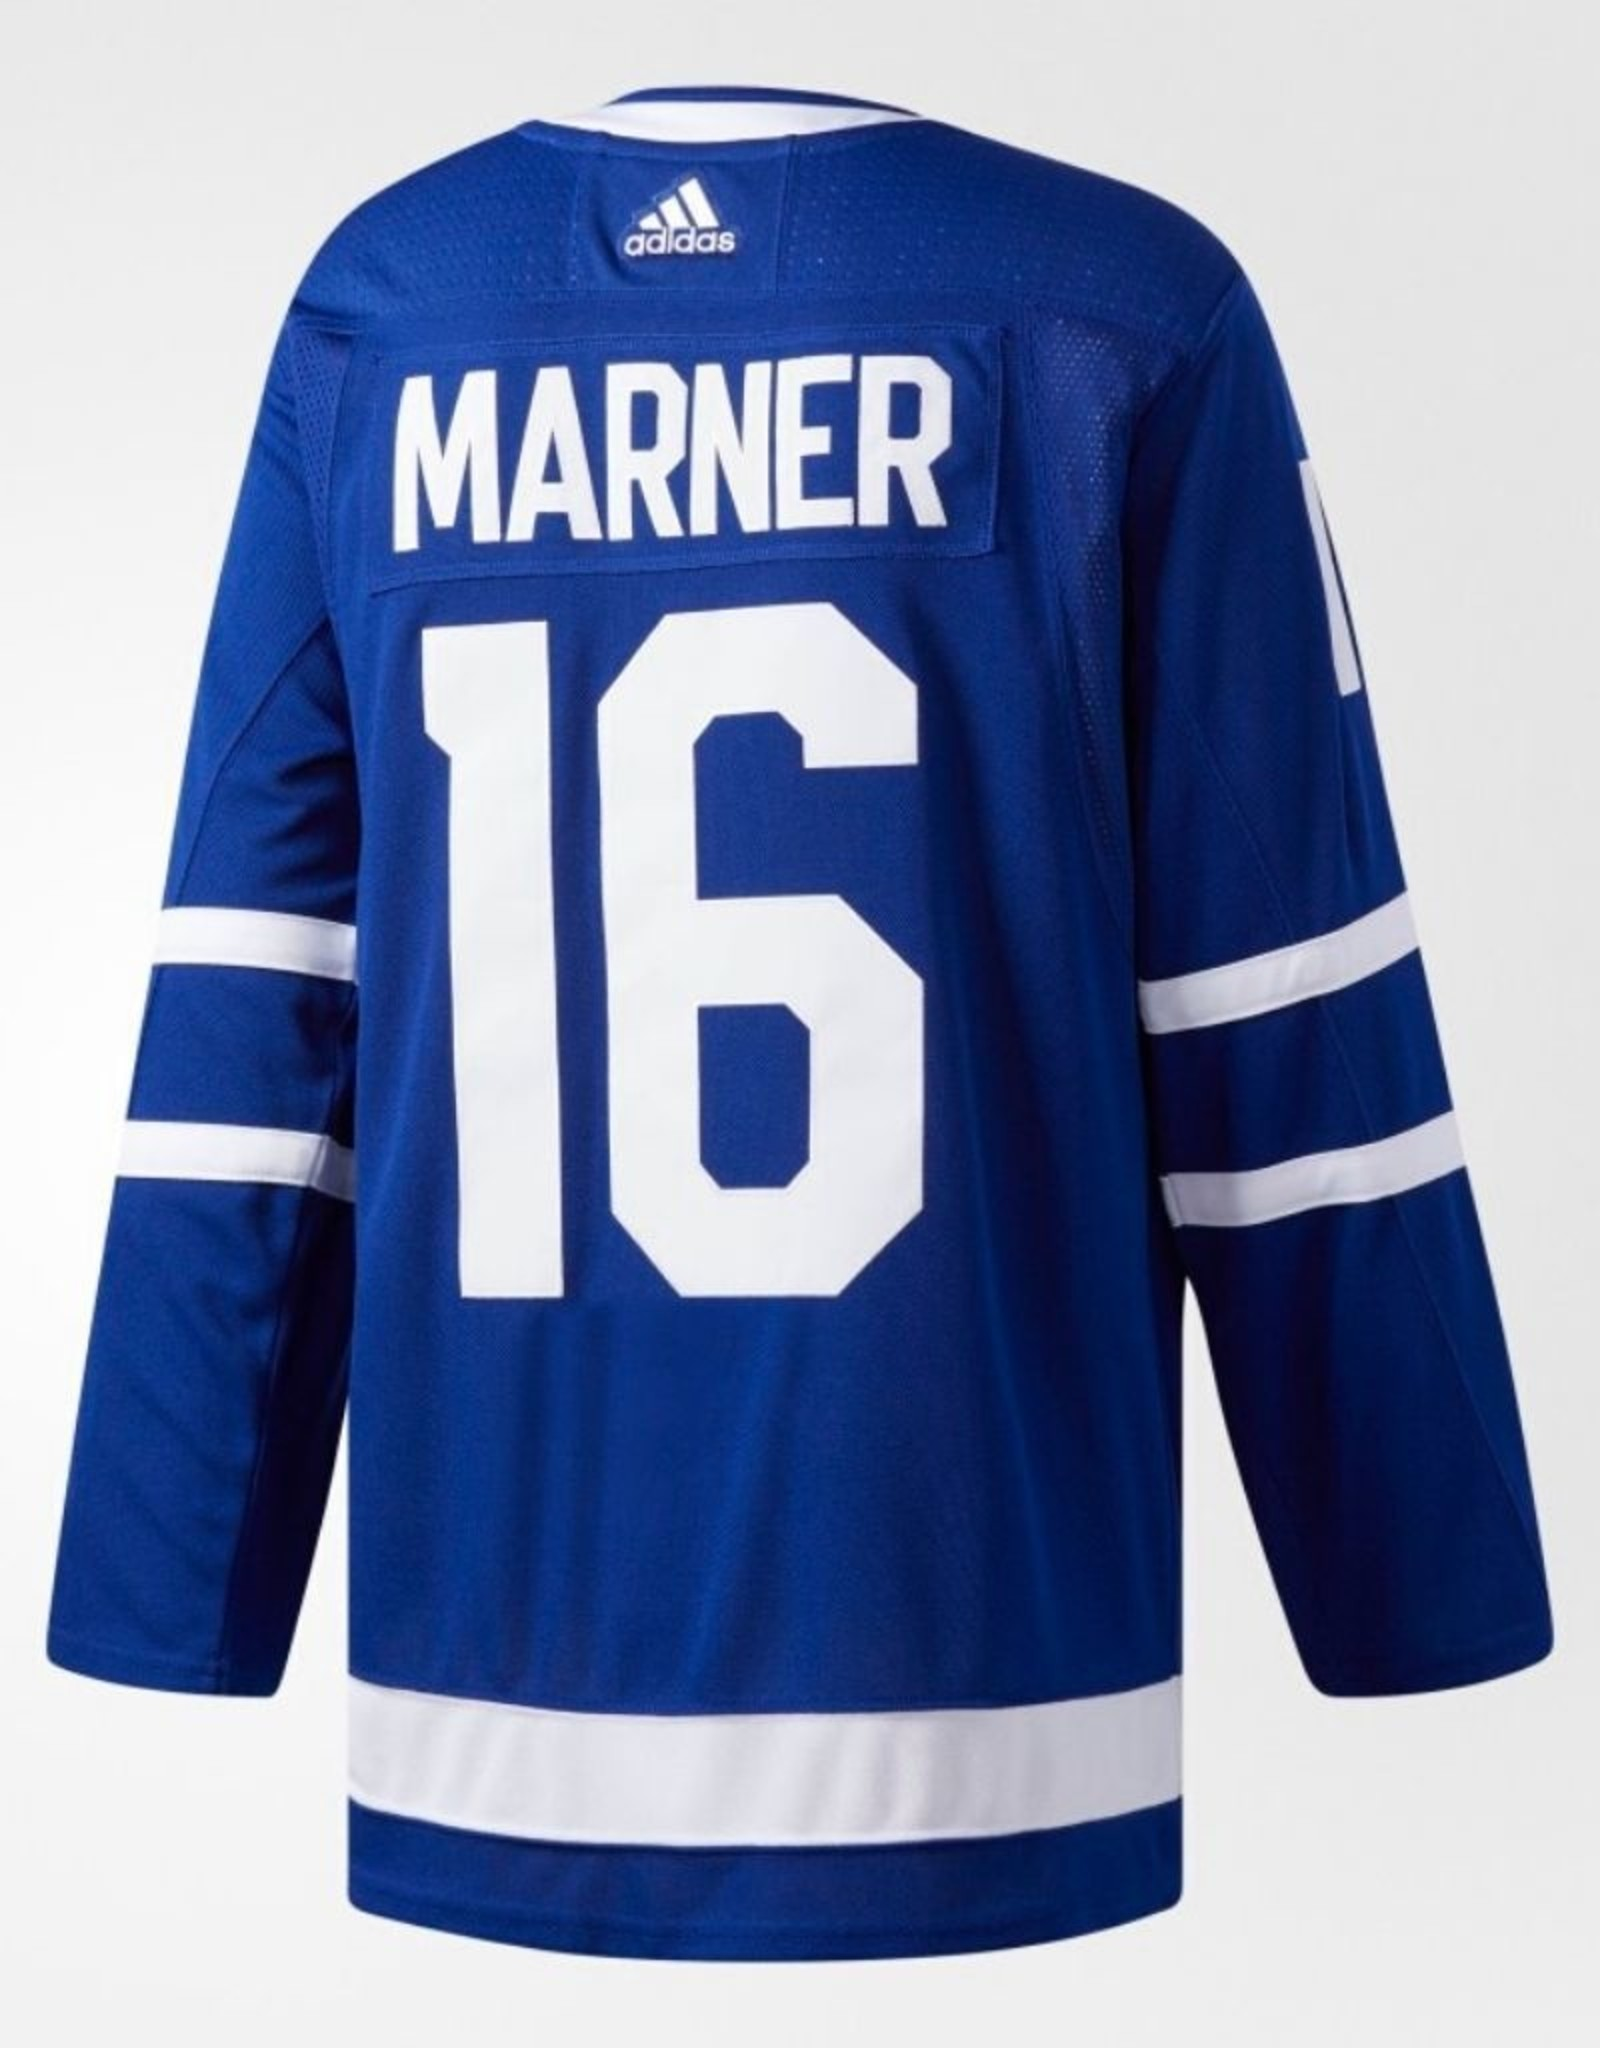 Adidas Adidas Adult Authentic Toronto Maple Leafs Marner Jersey Blue